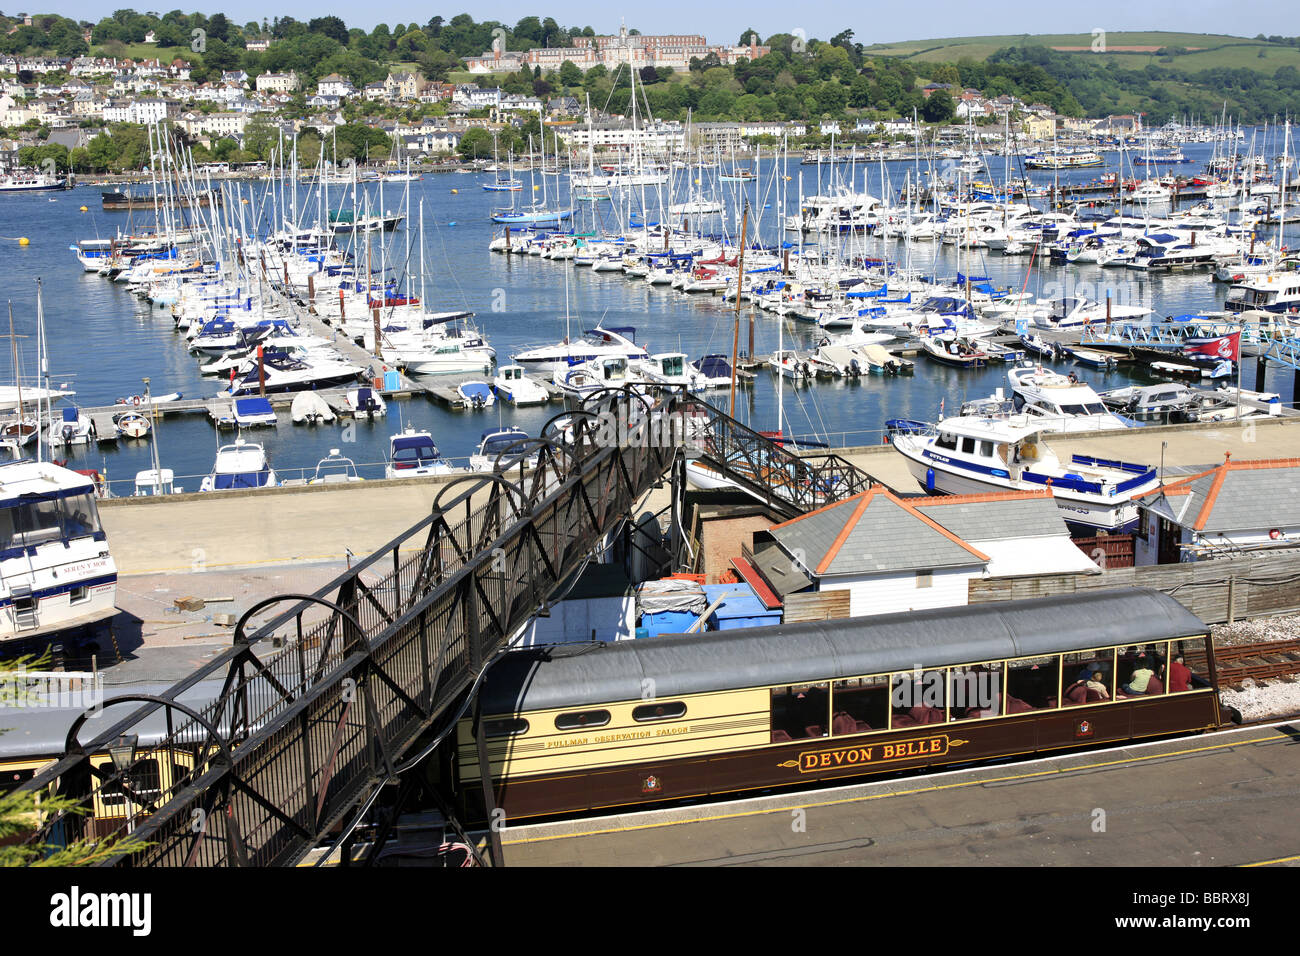 Steam trains and coaches of the Dart valley Railway at Kingswear Devon - Stock Image